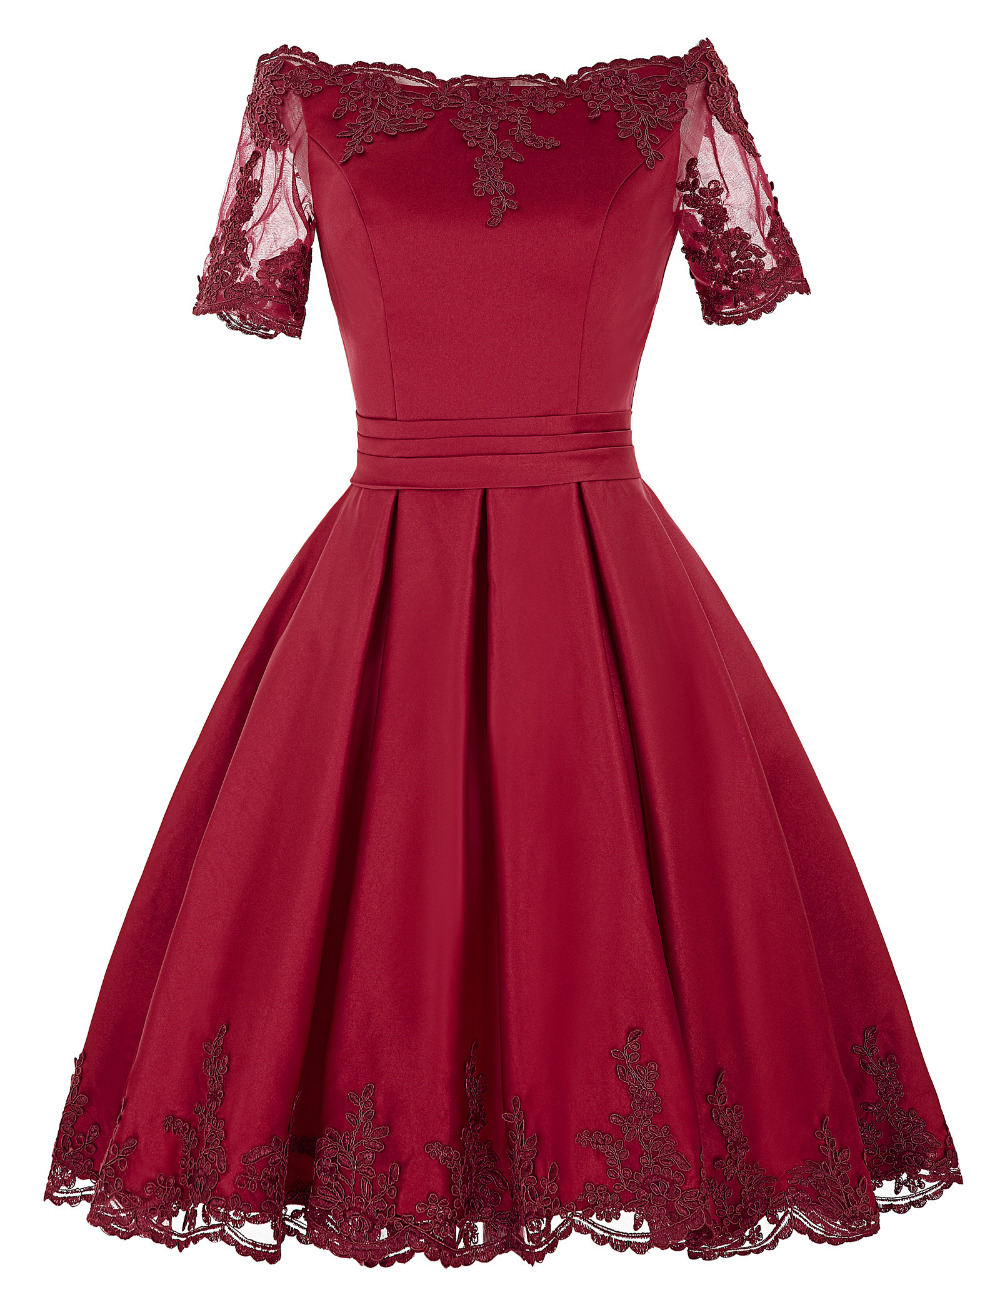 Short lace mother of the bride dresses 2016 new arrival for Formal short dresses for weddings